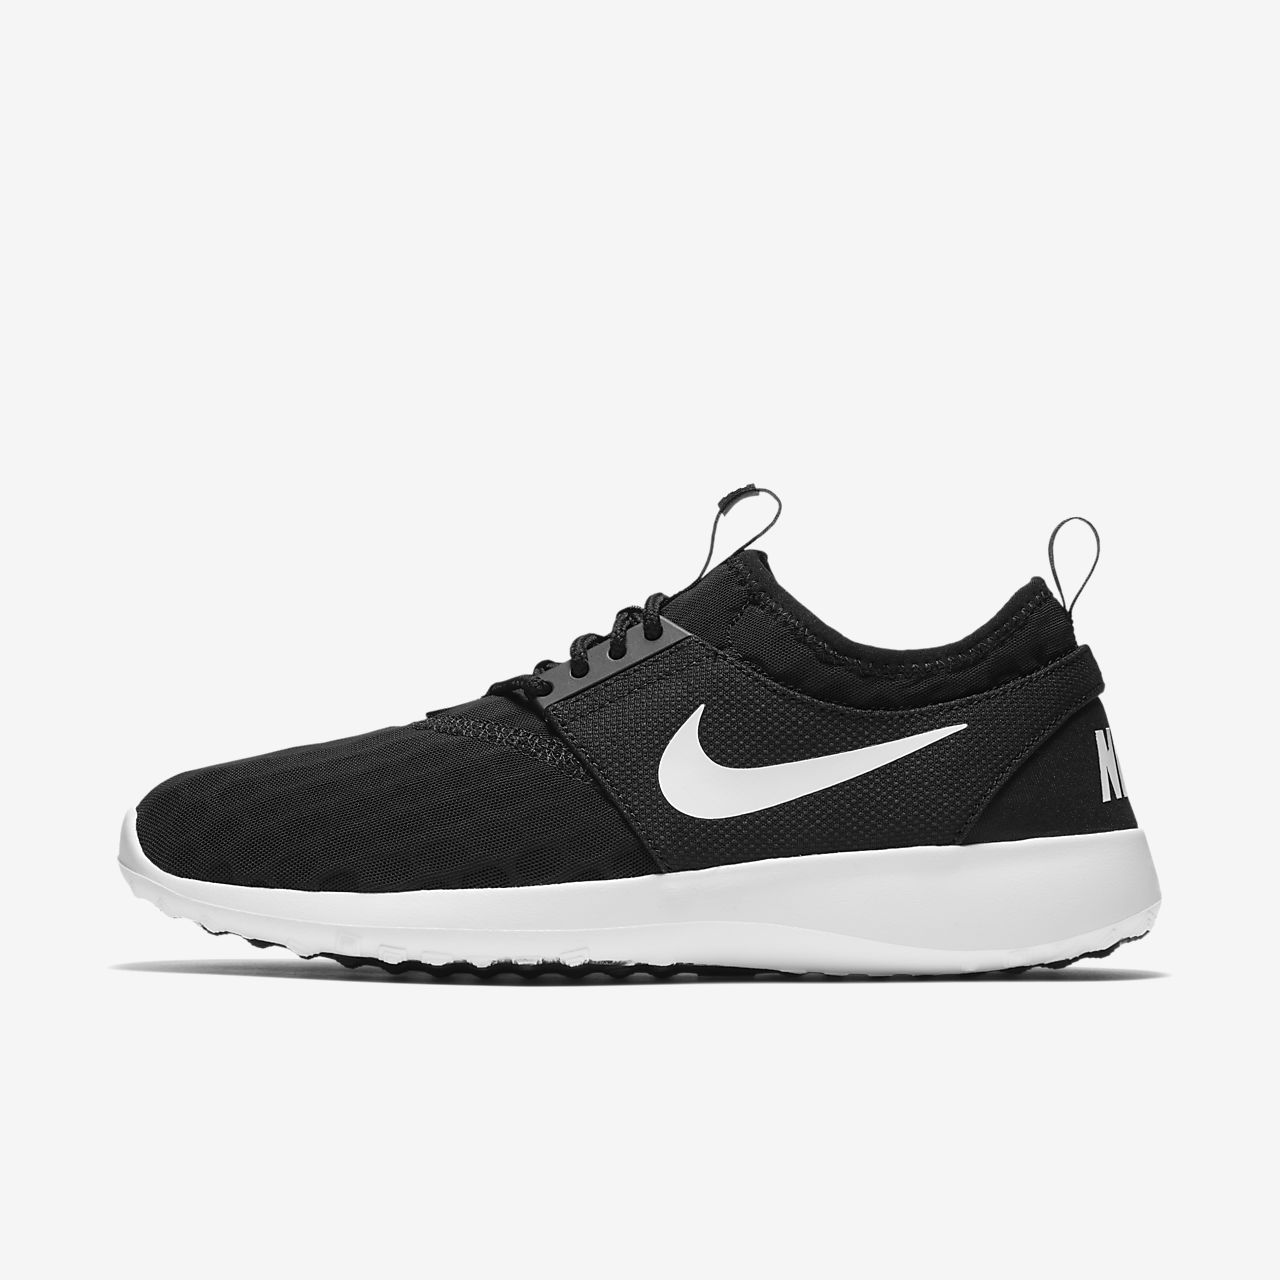 c4c1df123bda39 Low Resolution Nike Juvenate Women s Shoe Nike Juvenate Women s Shoe